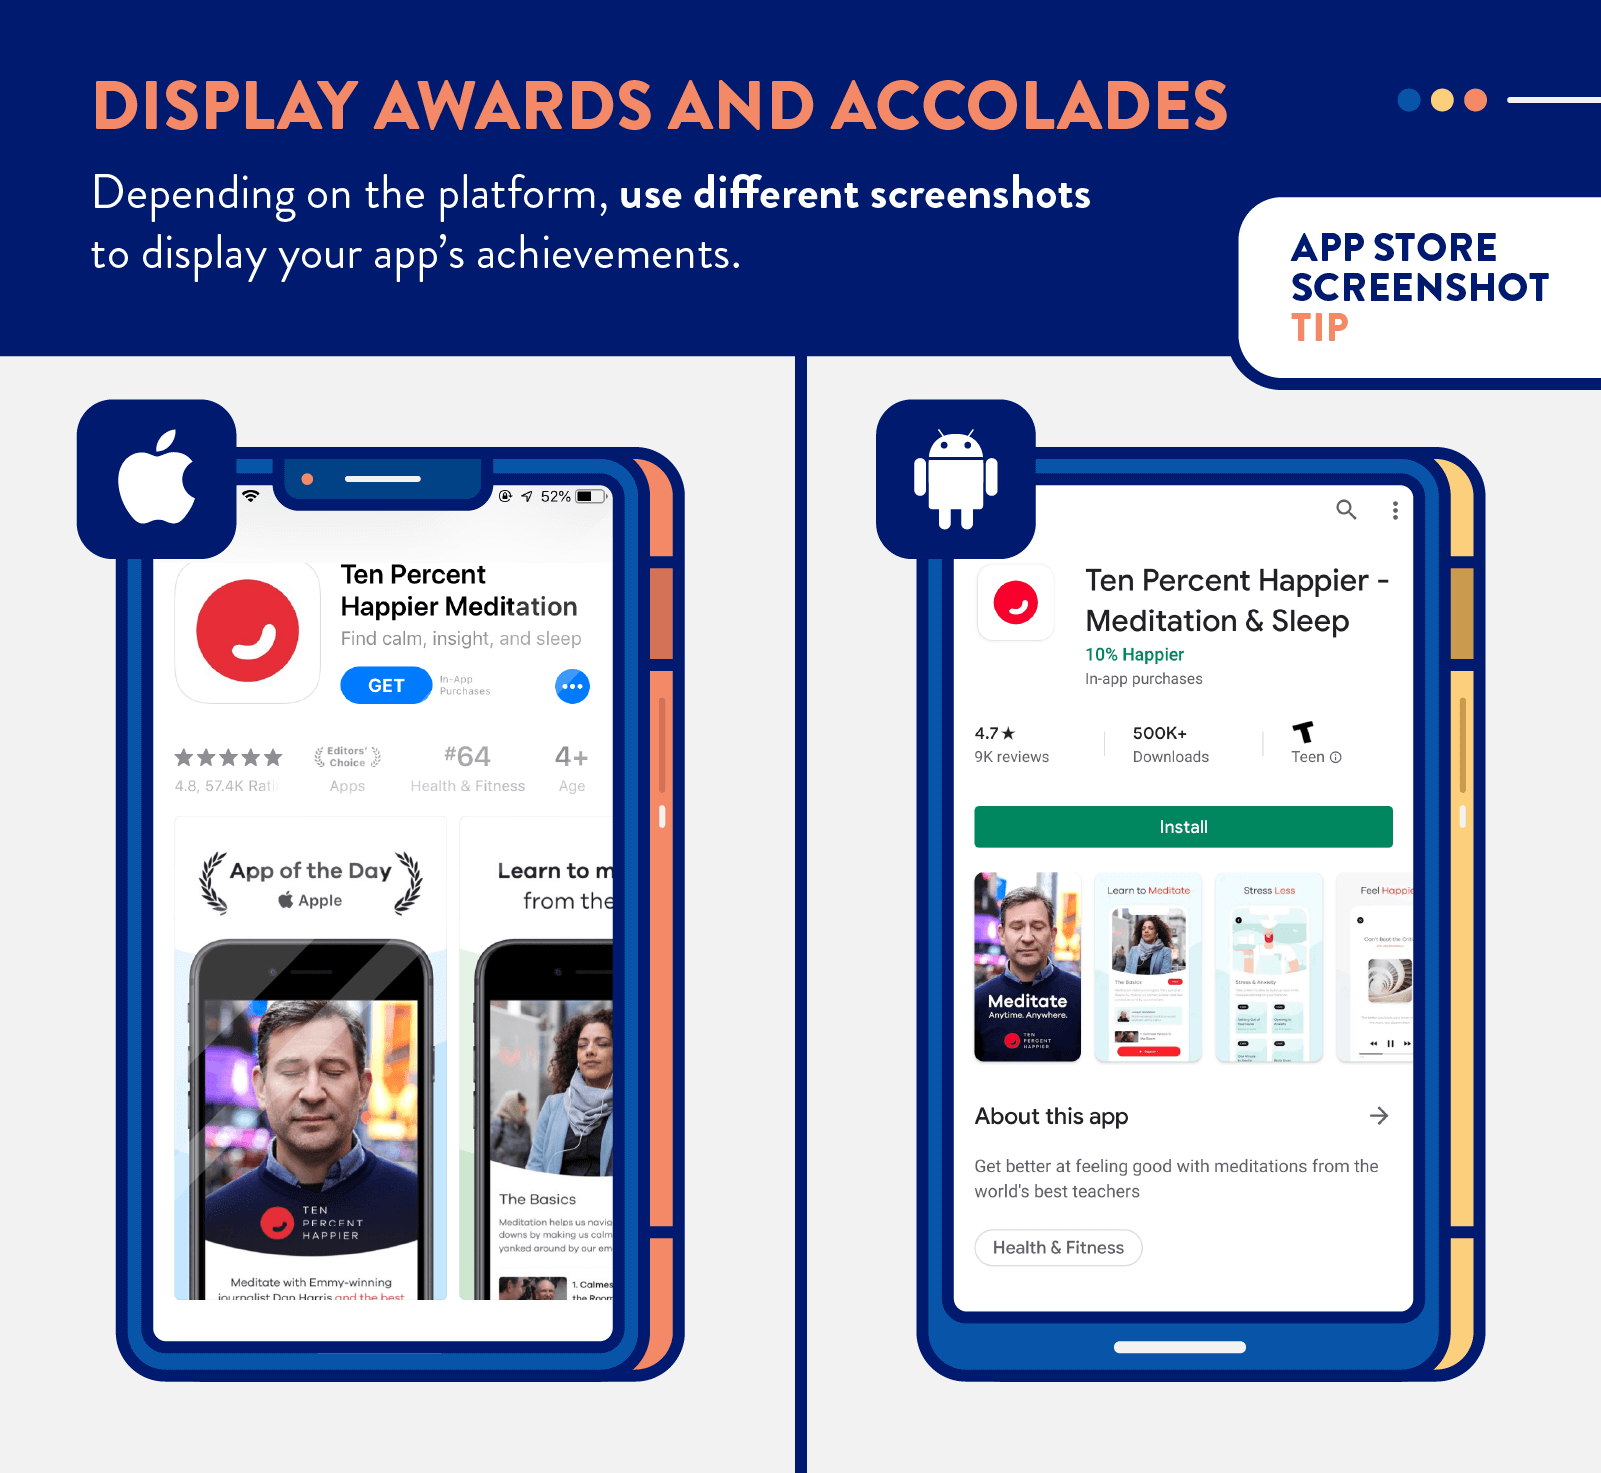 app store screenshots tip to display awards and accolades